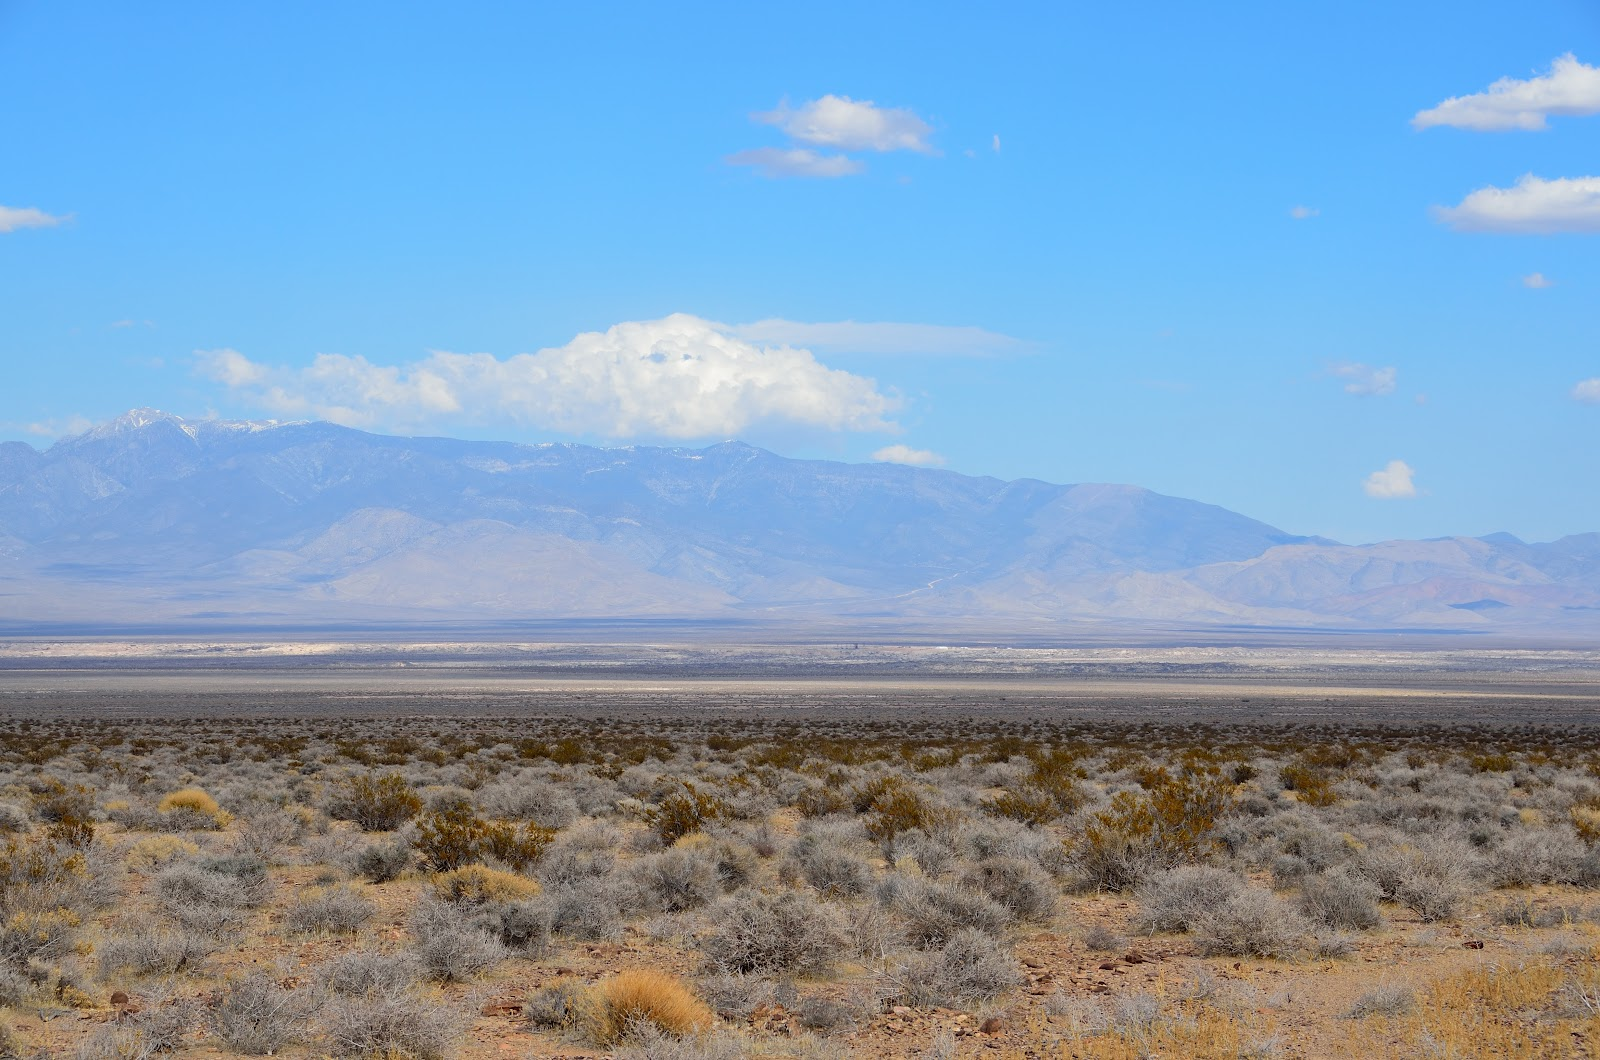 Mojave Desert Wallpapers High Quality Download Free